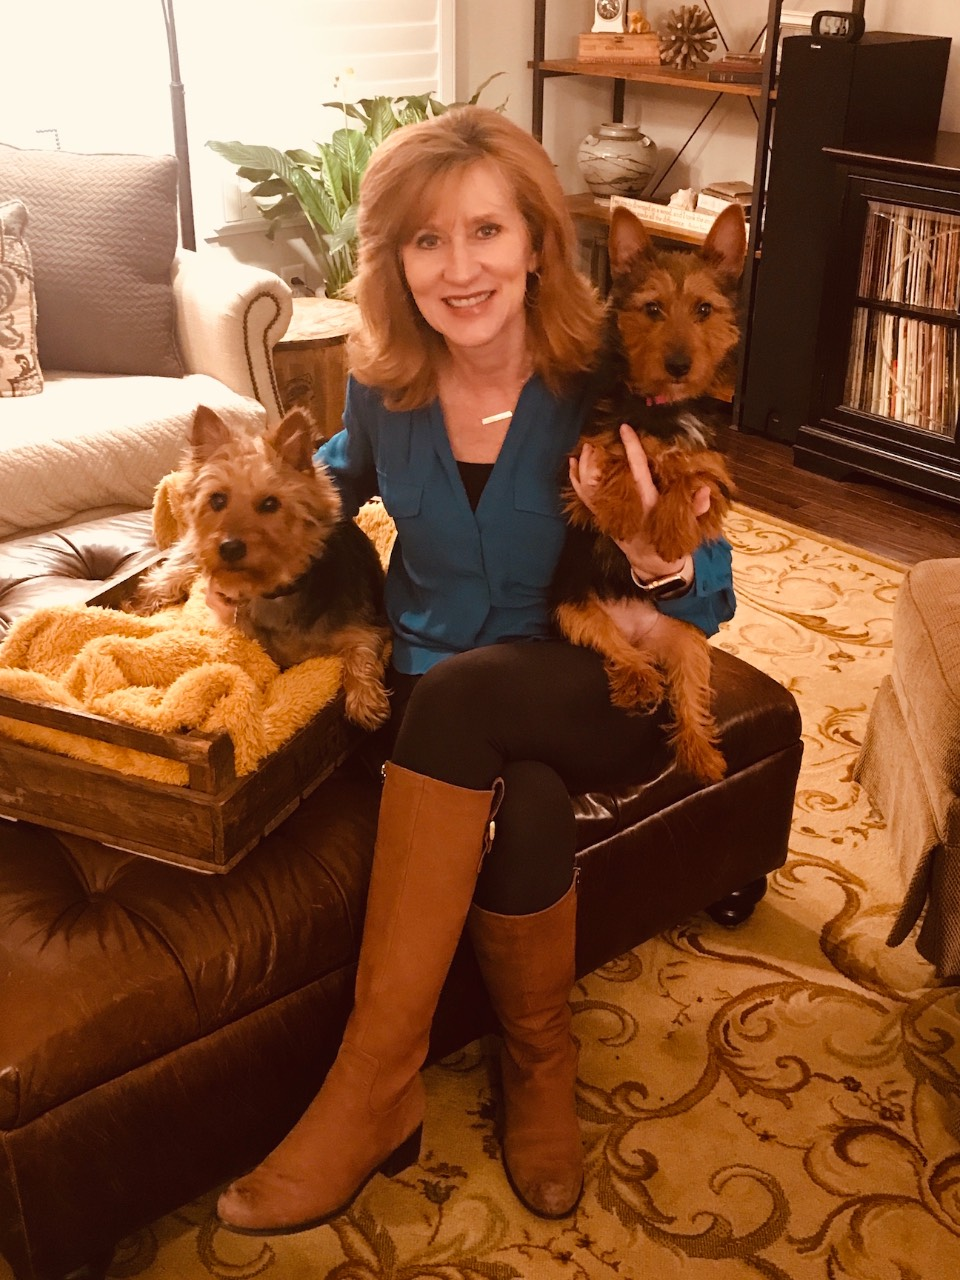 Tamera with Murphy (left) and Bailey (right) her sweet but slightly rowdy Australian Terriers (emphasis on terriers!)